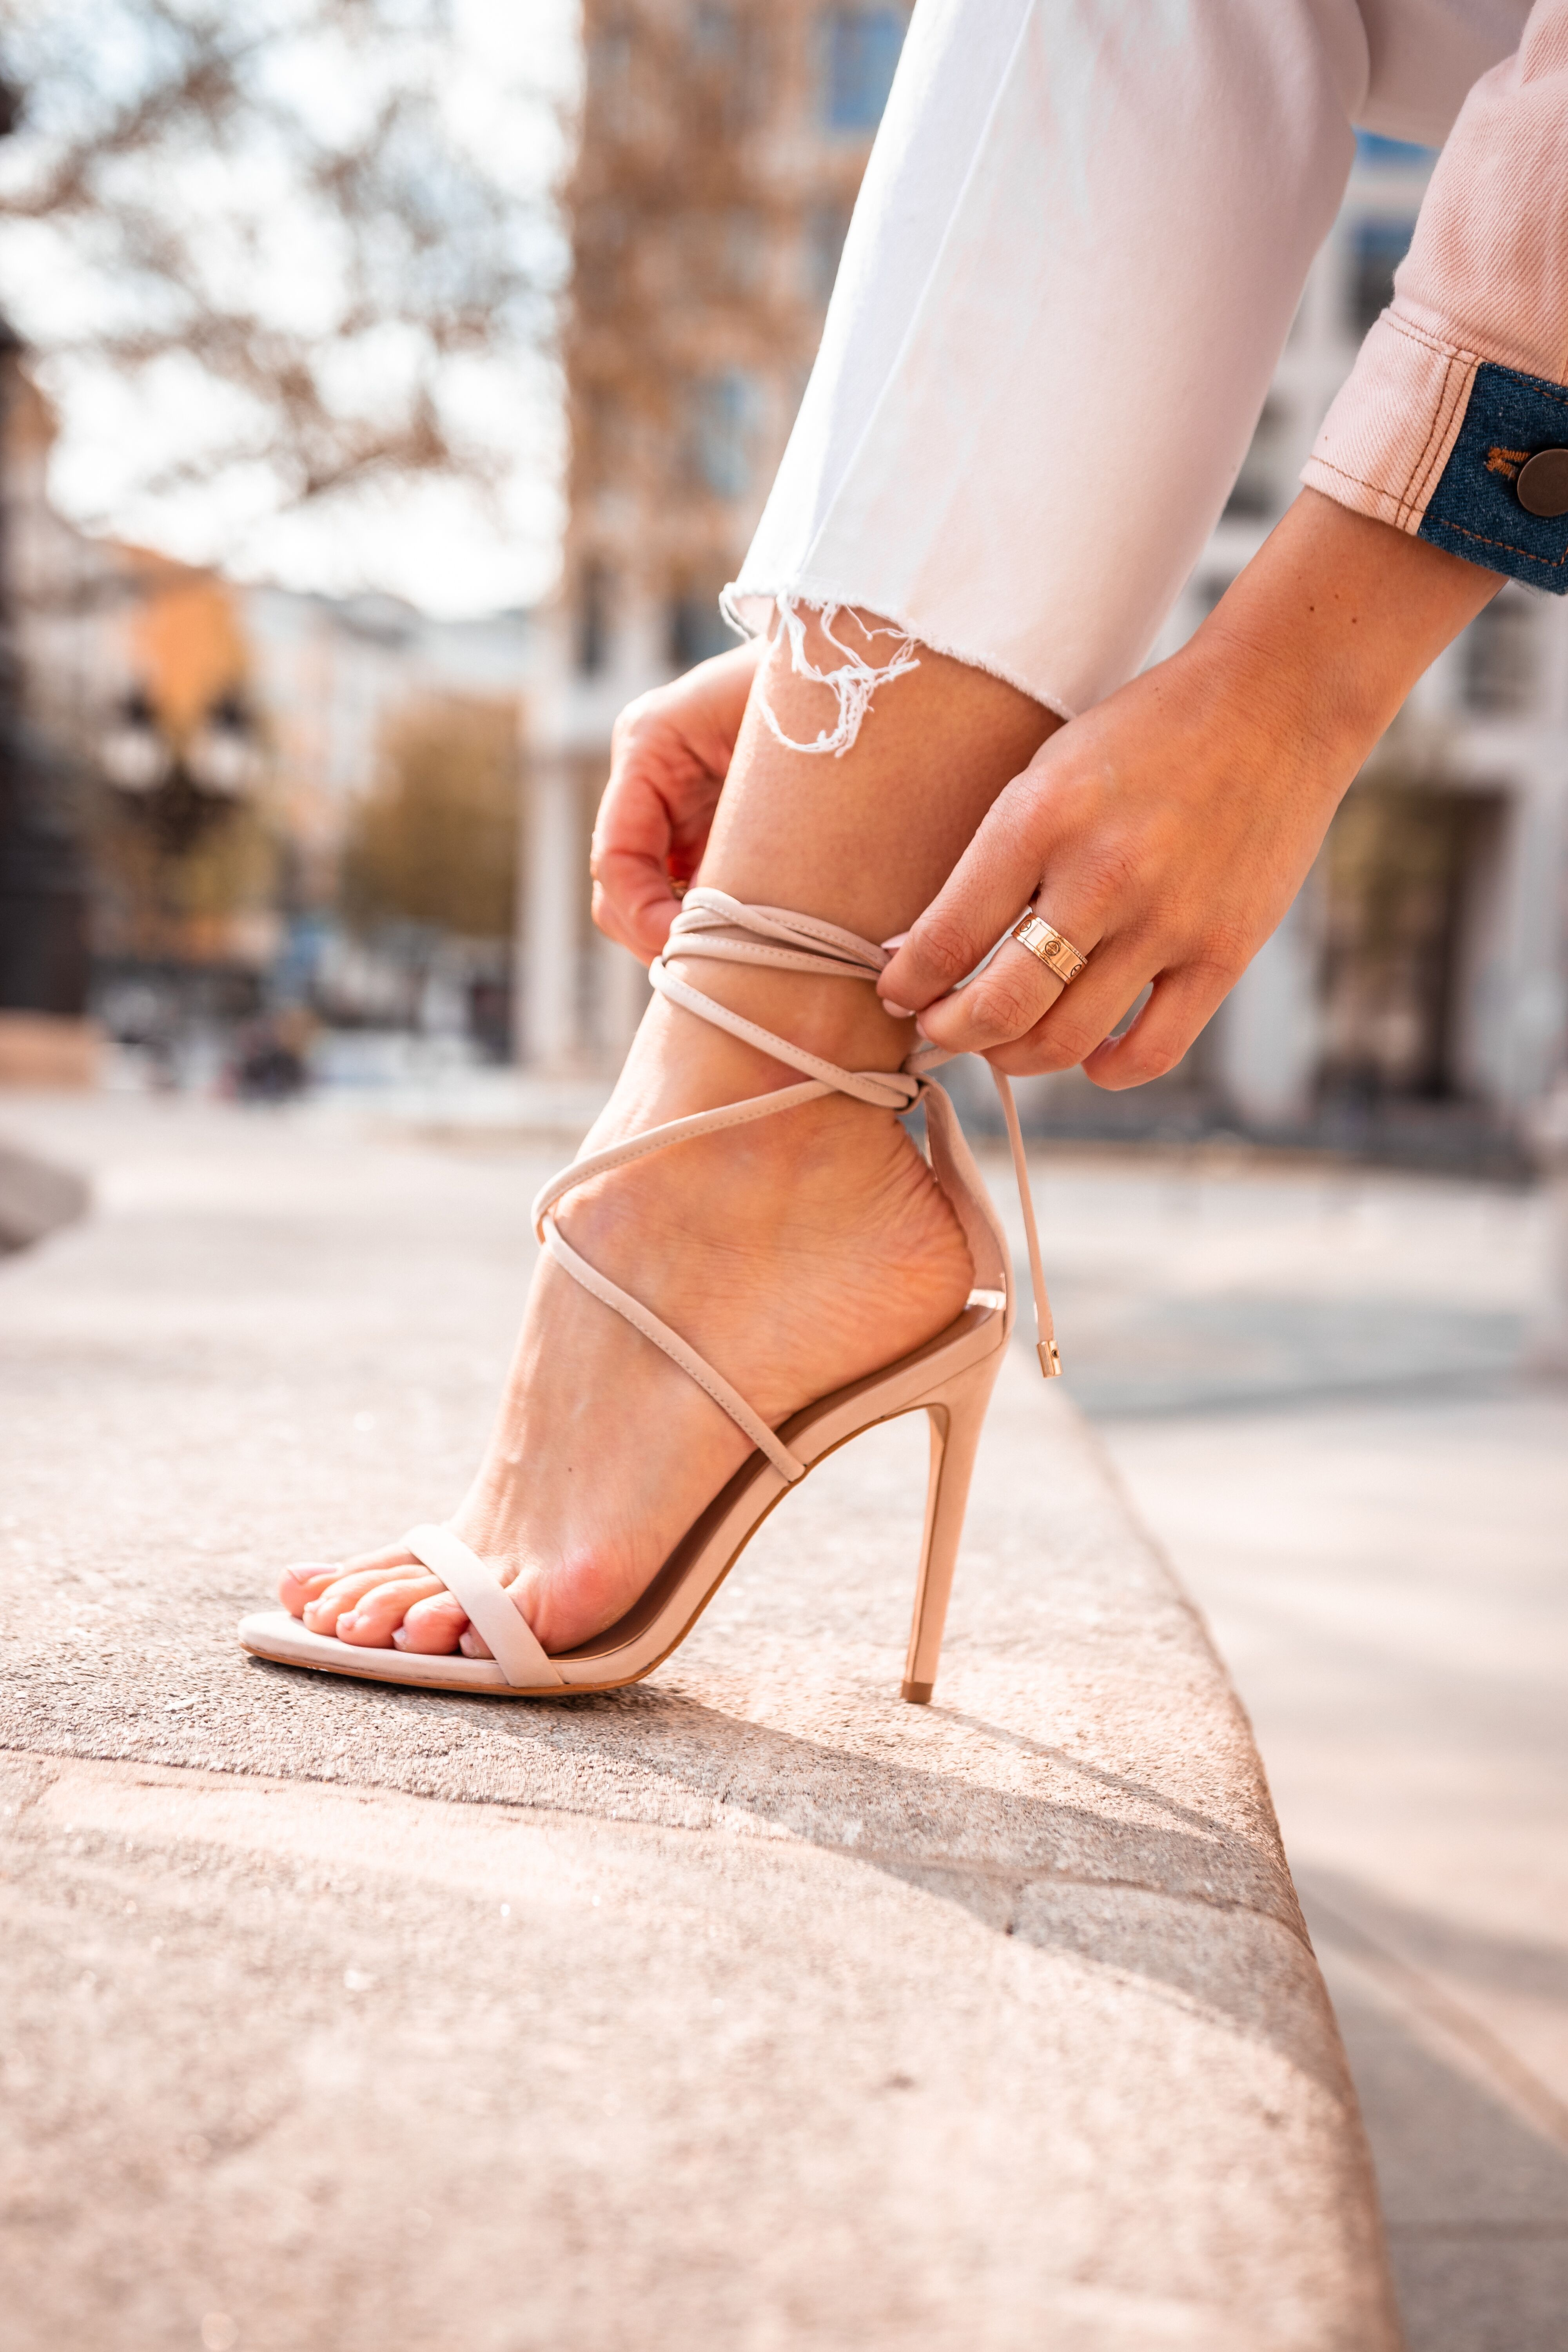 dc79d77c42 Show off your sexier side this summer with beautiful nude lace up sandal.  Shop yours